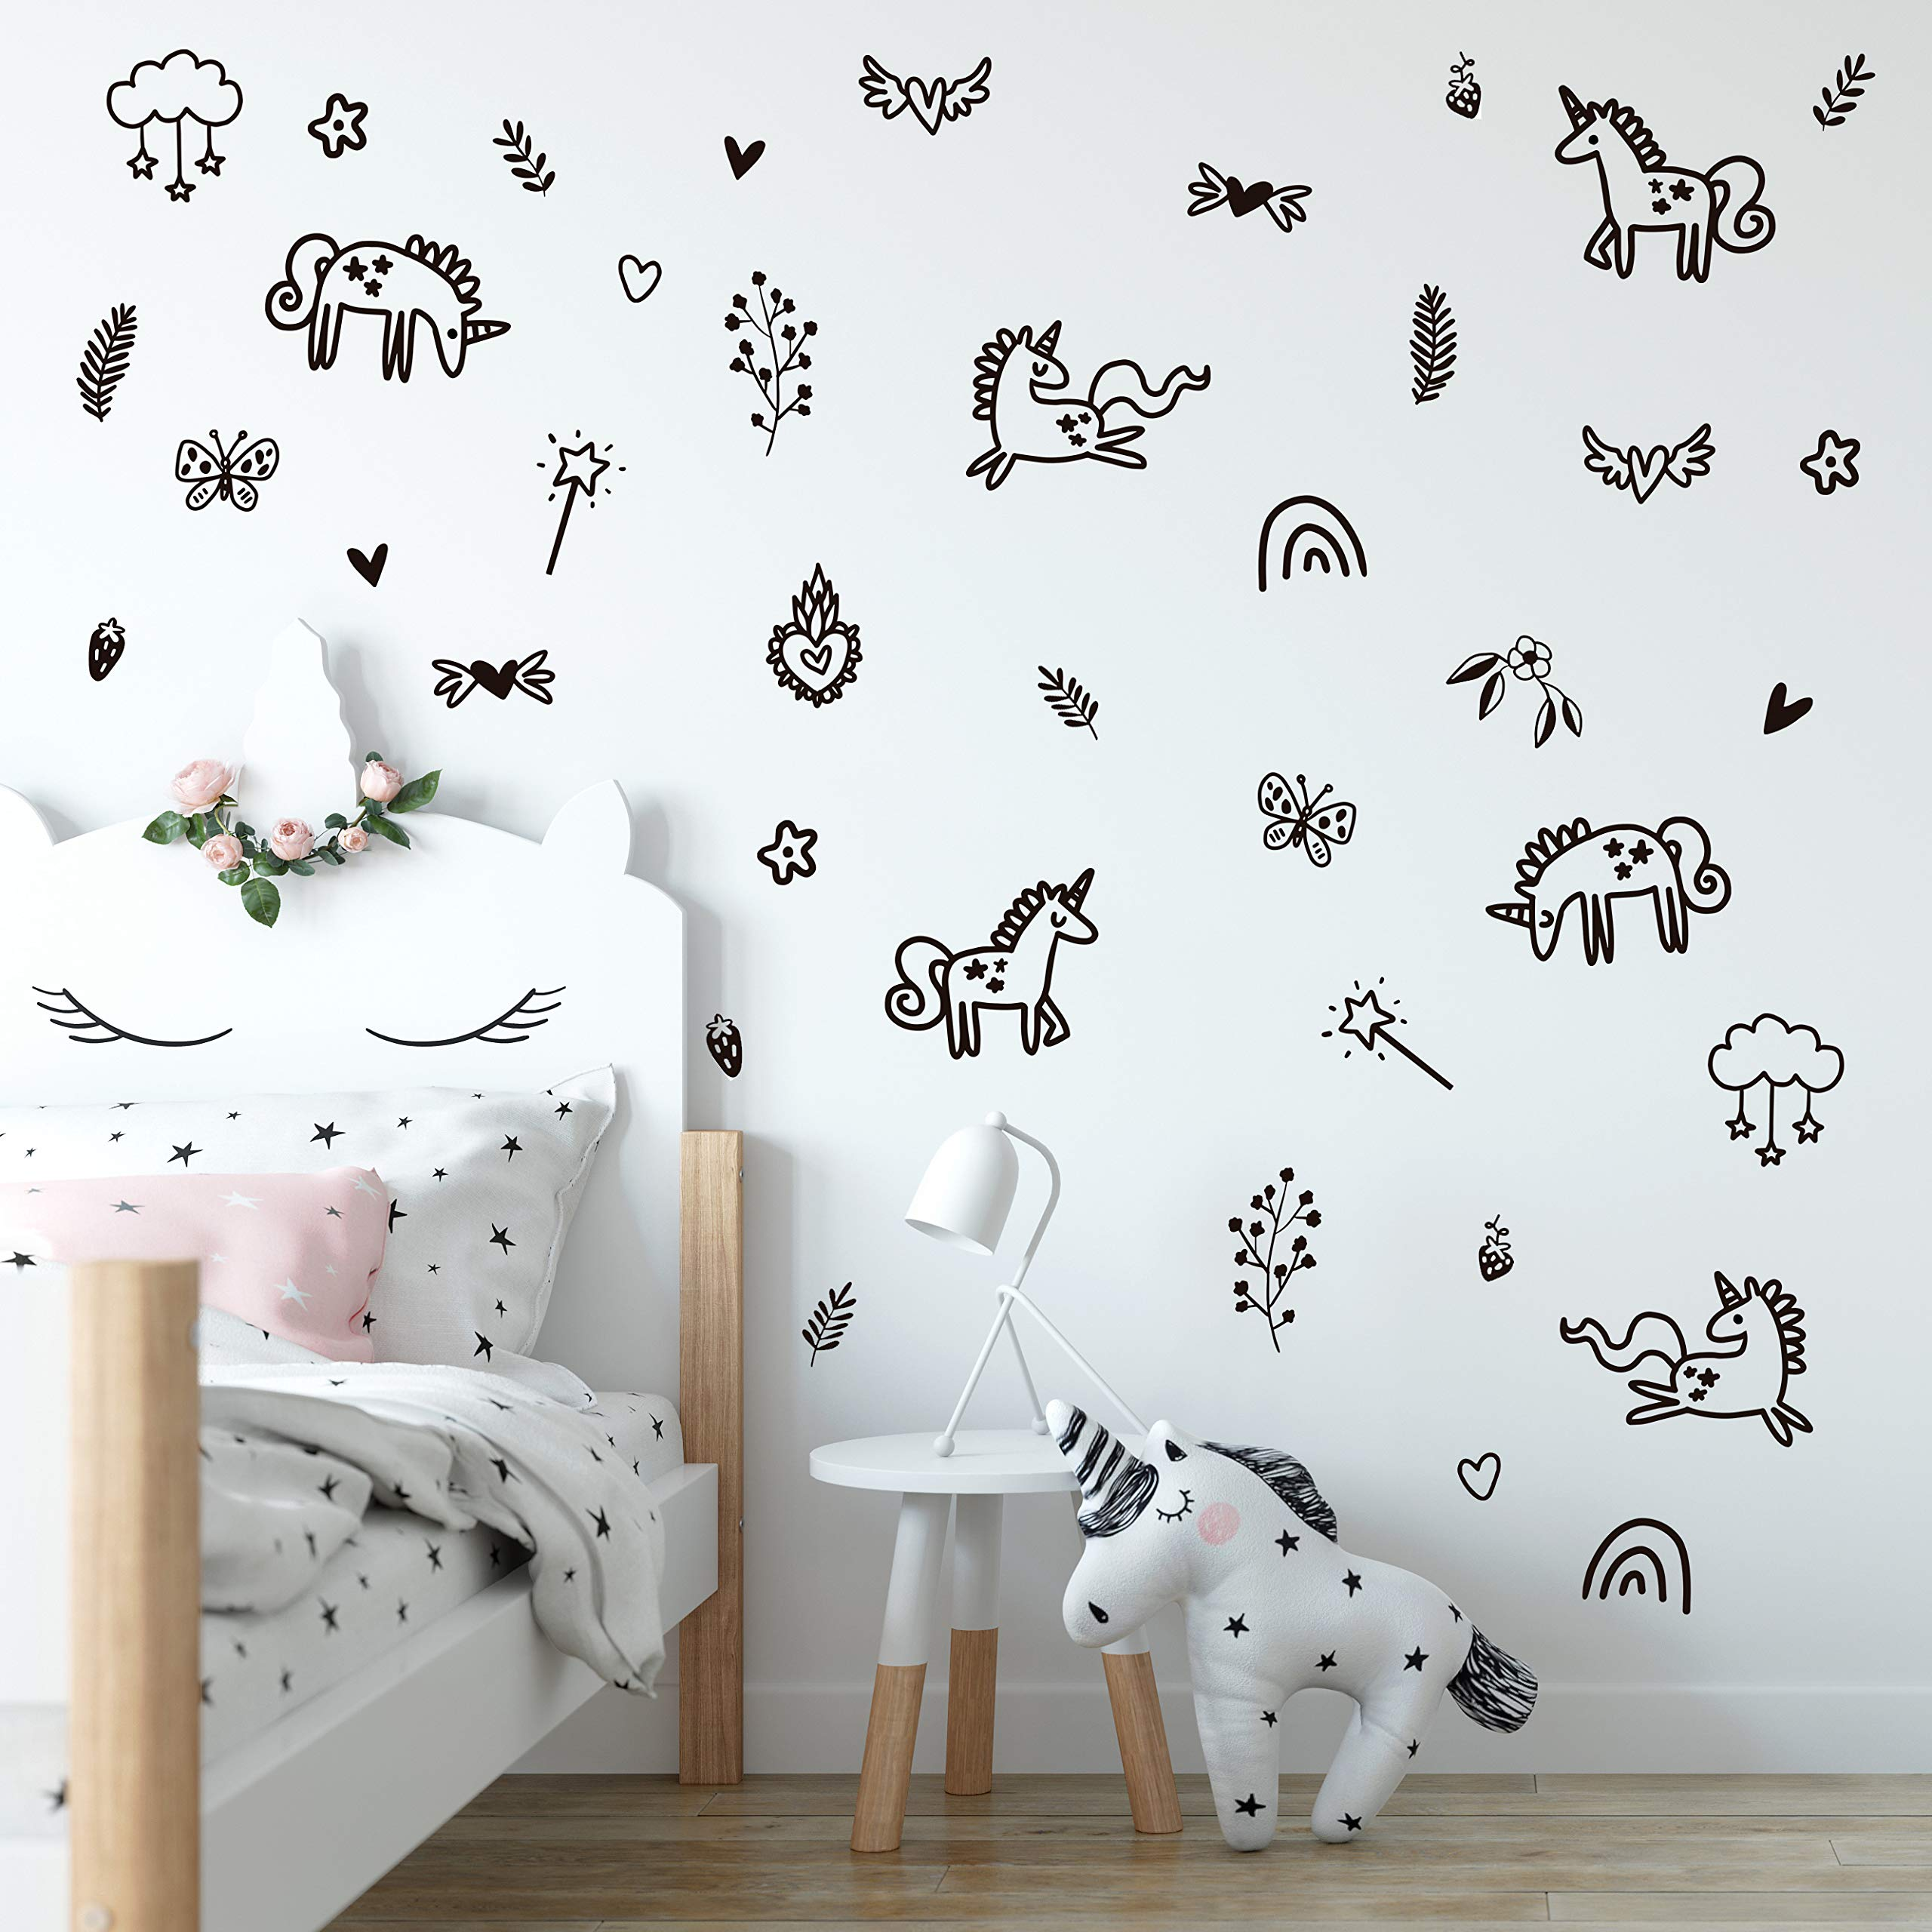 Vinilo Decorativo Pared [7L8PDDWZ] unicornio